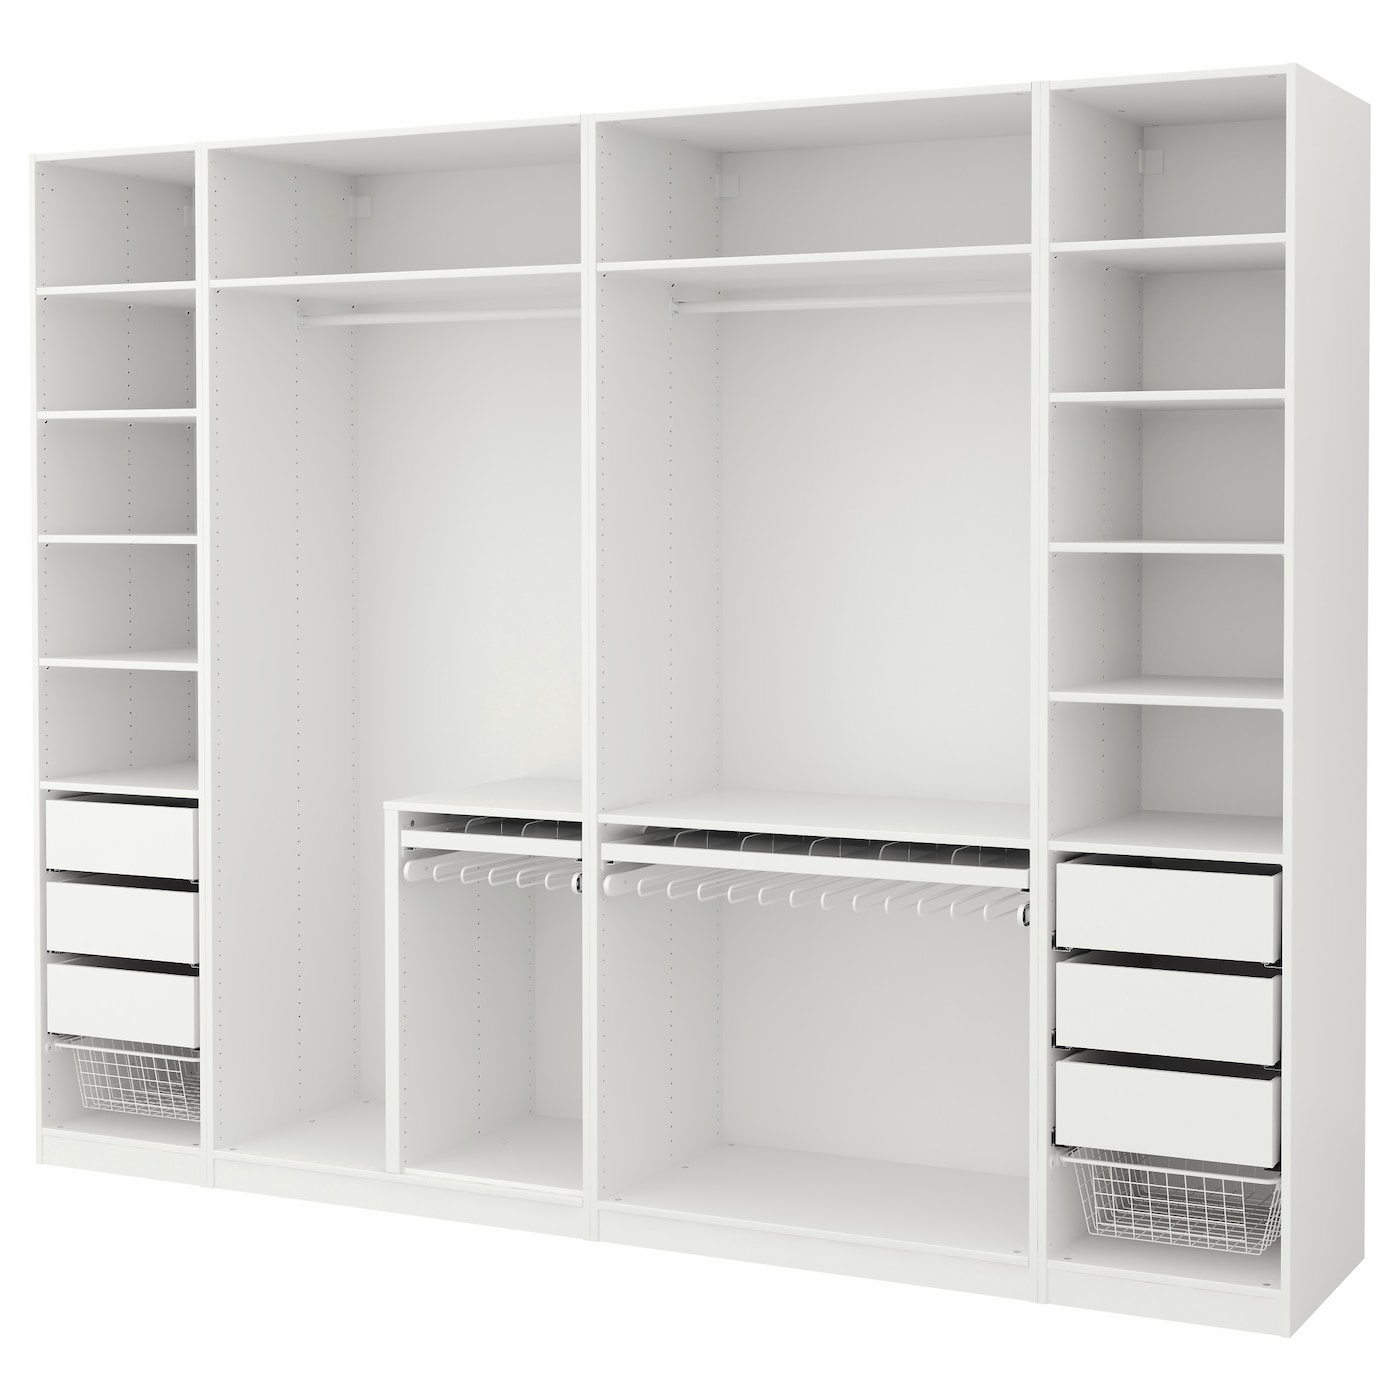 pax wardrobe white 300x58x236 cm ikea. Black Bedroom Furniture Sets. Home Design Ideas